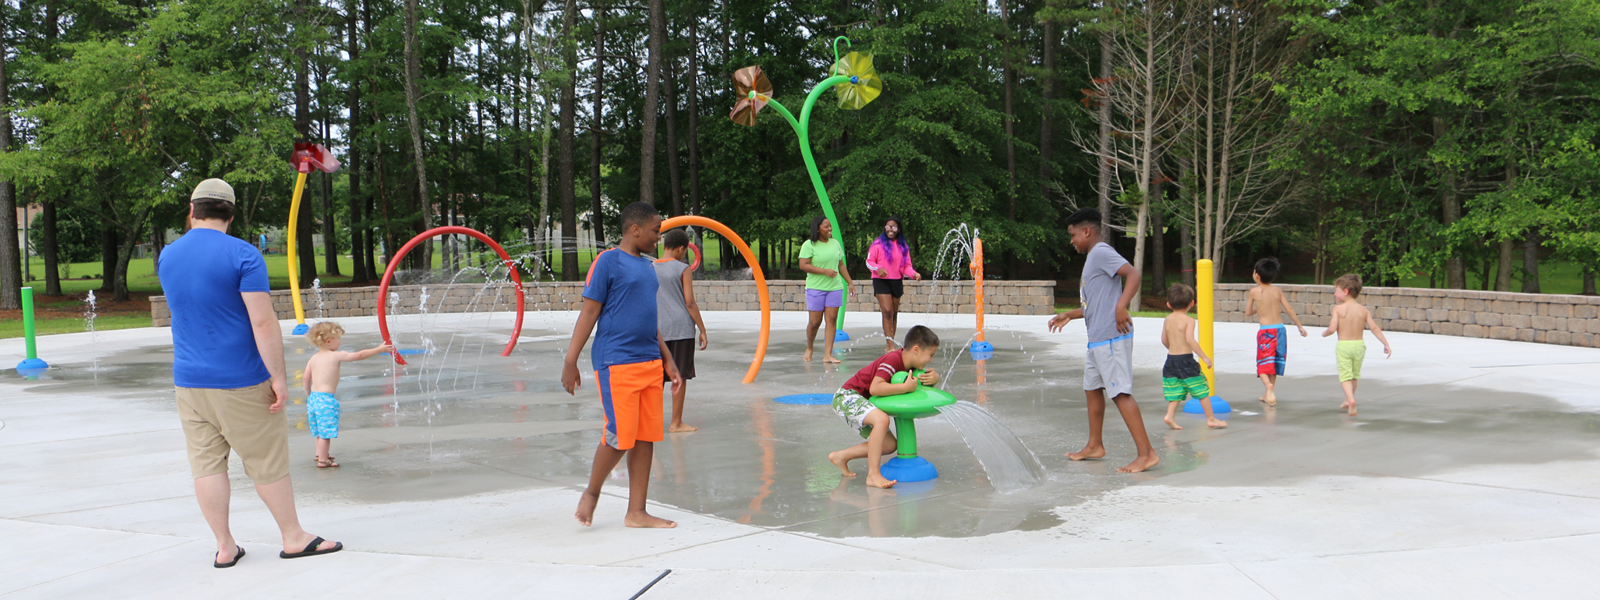 The Northeast Creek Park splash pad is now open to the public